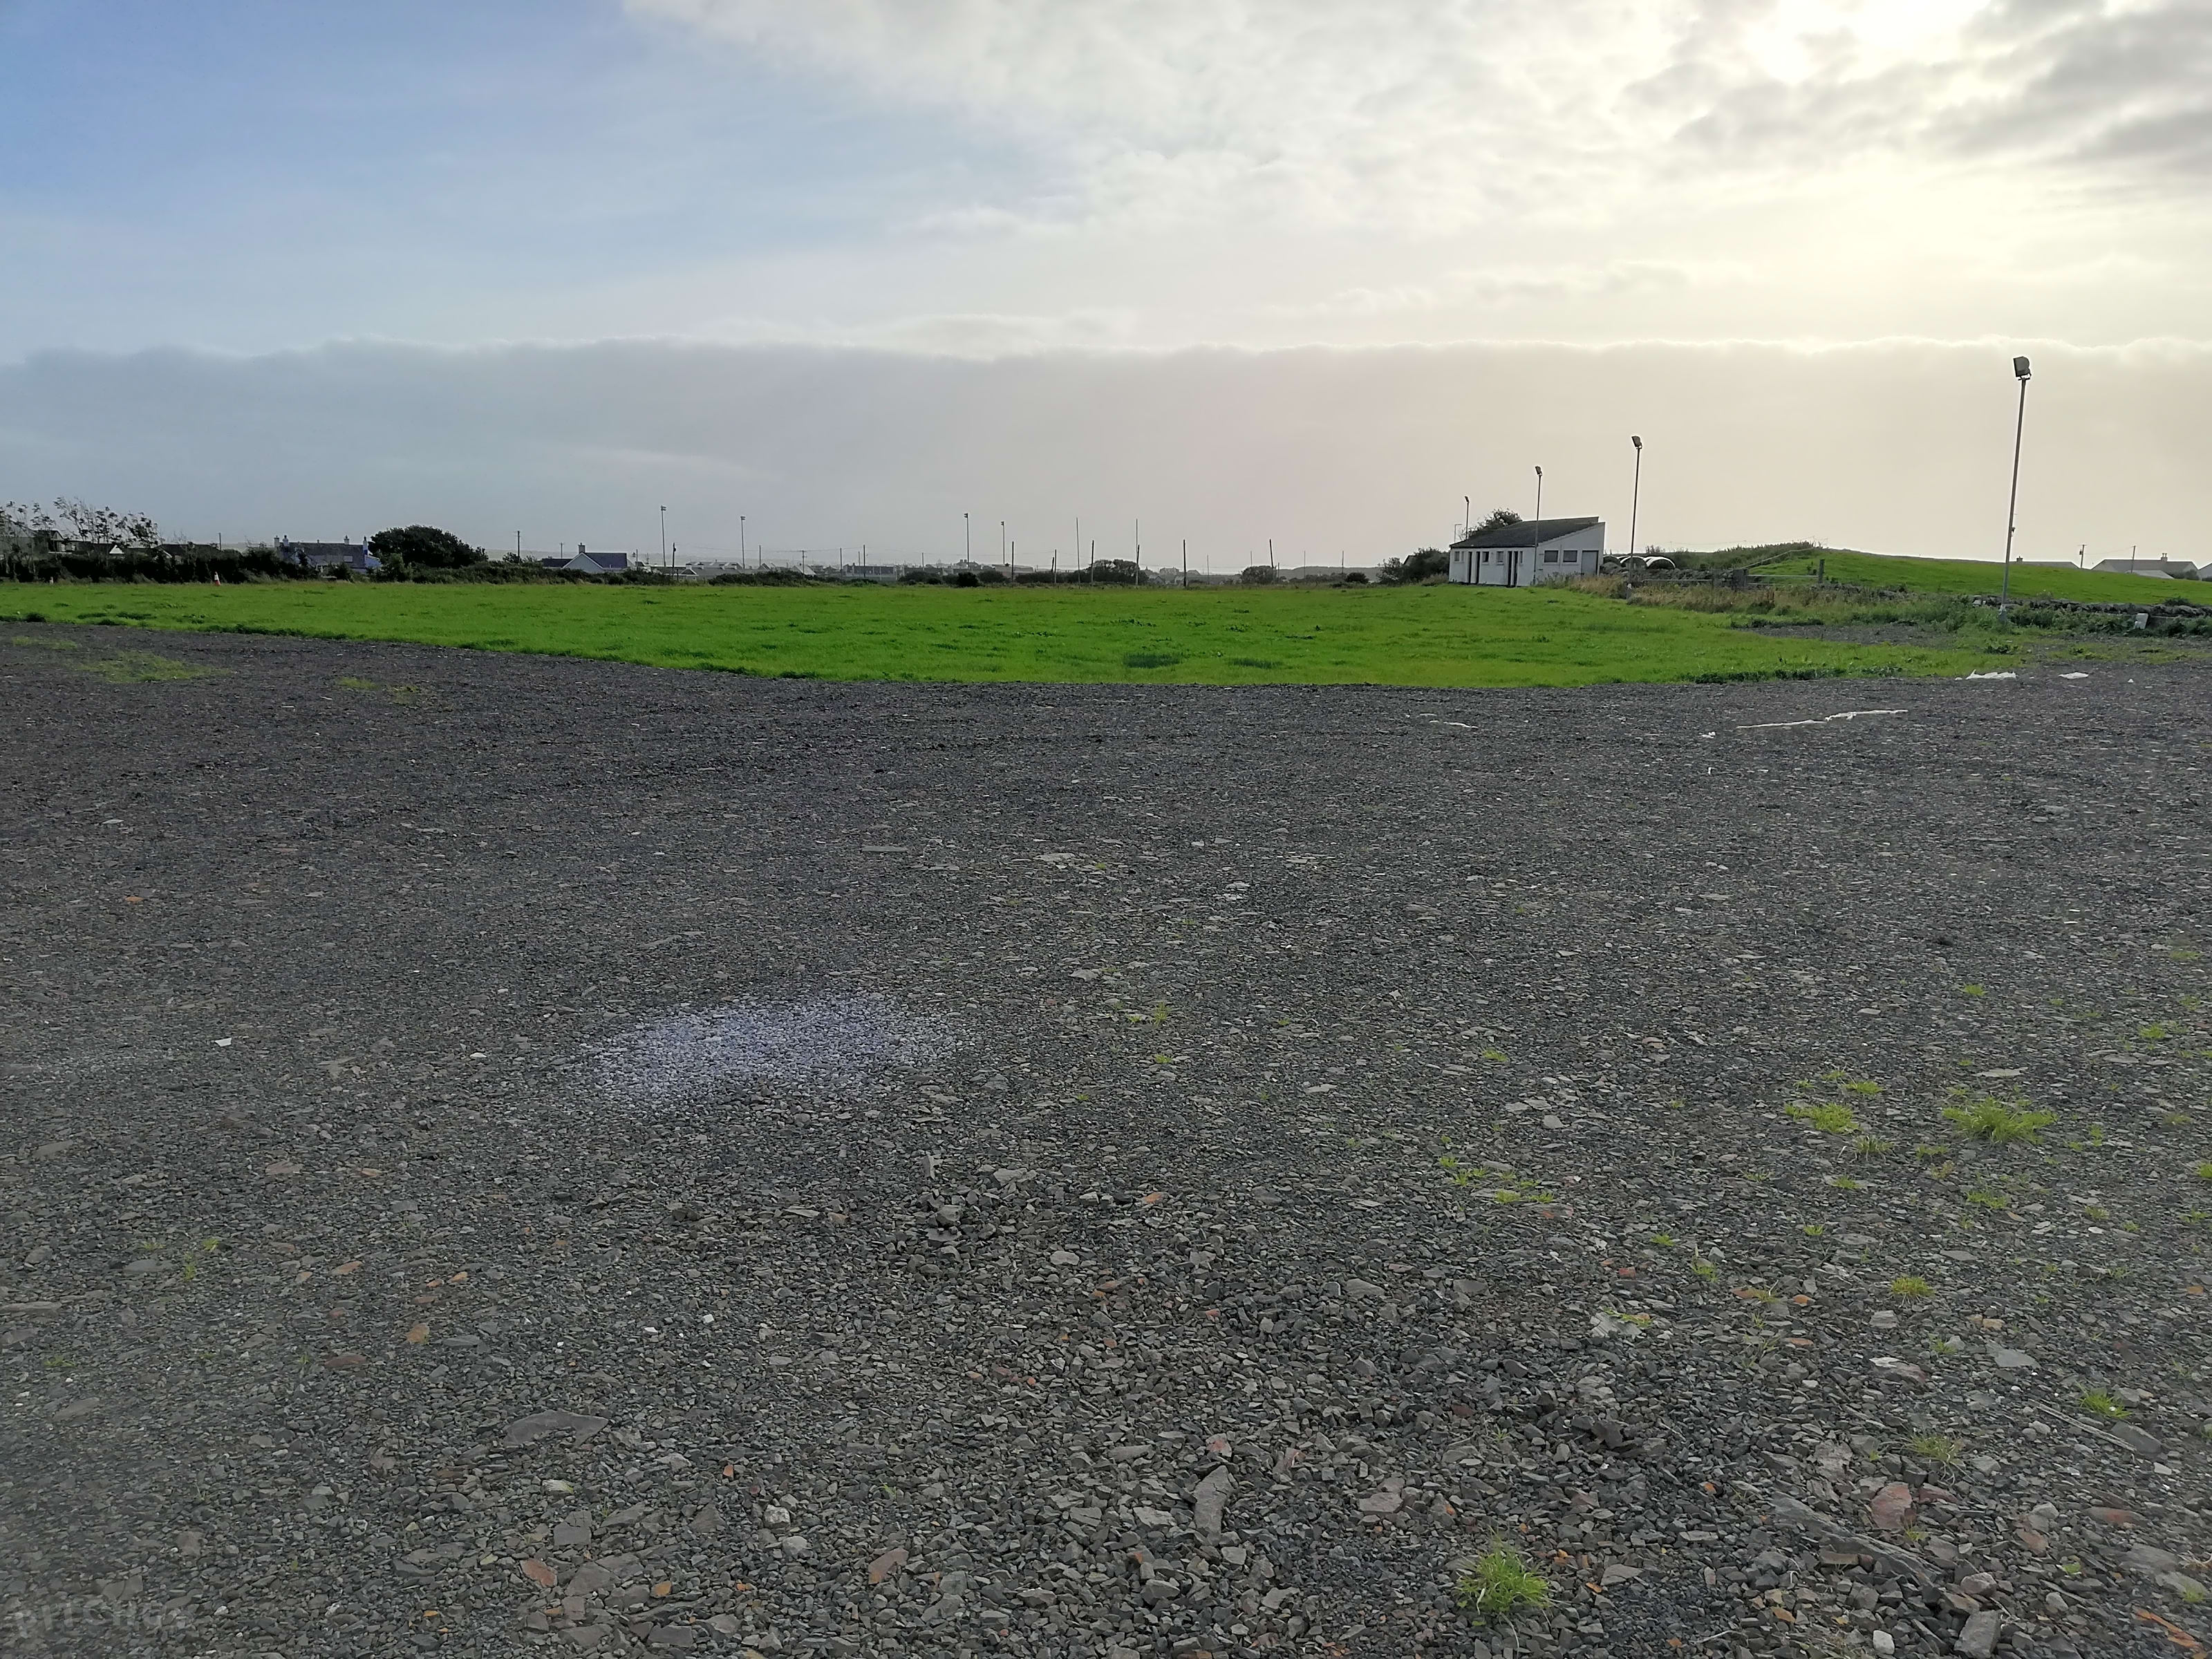 Best Campgrounds in Miltown Malbay, Co. Clare 2020 from $19.94